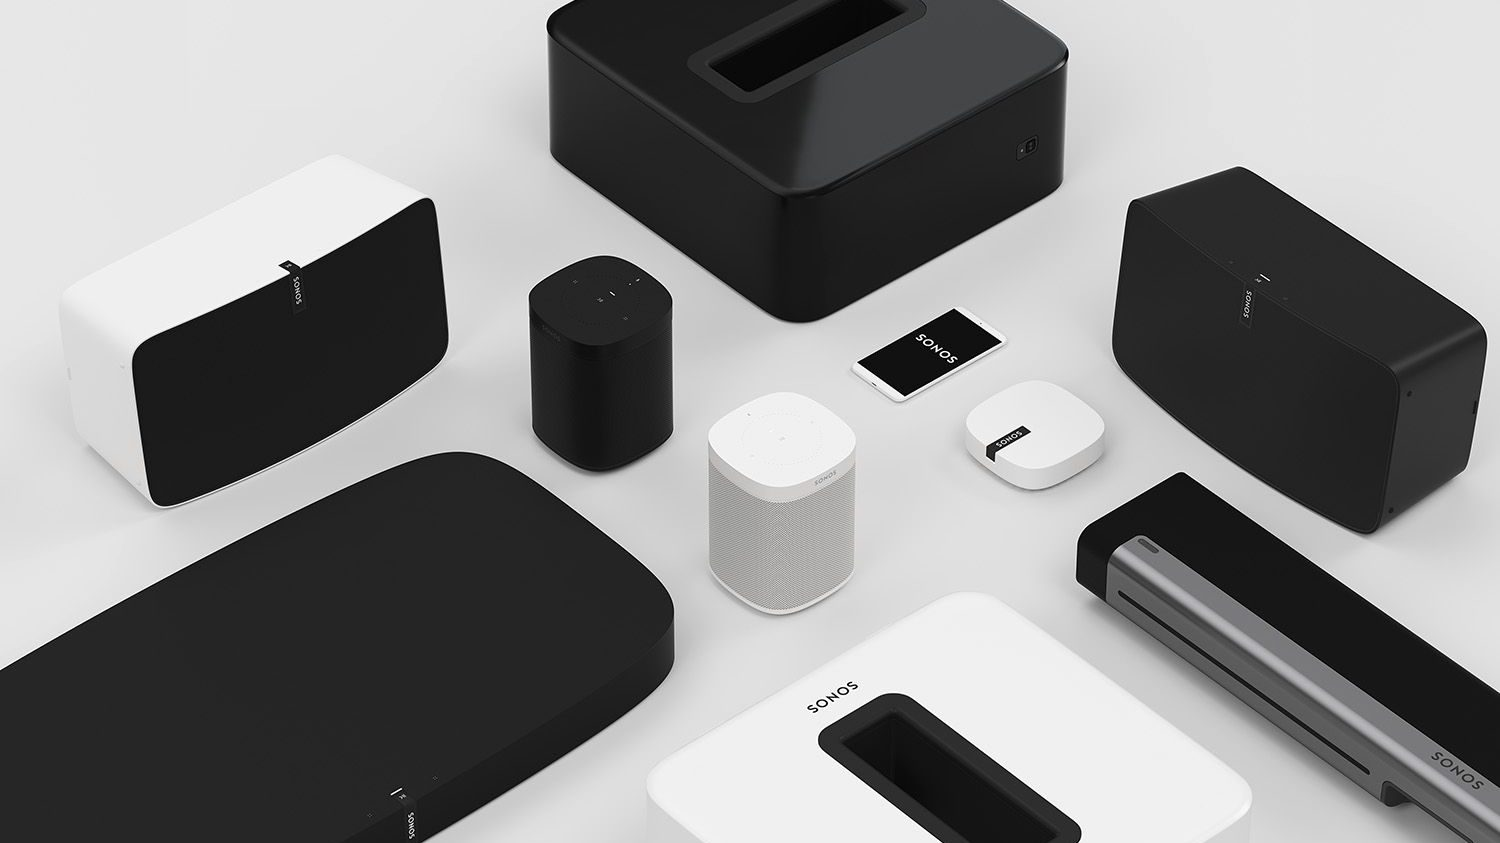 The Sonos family relies on big partners